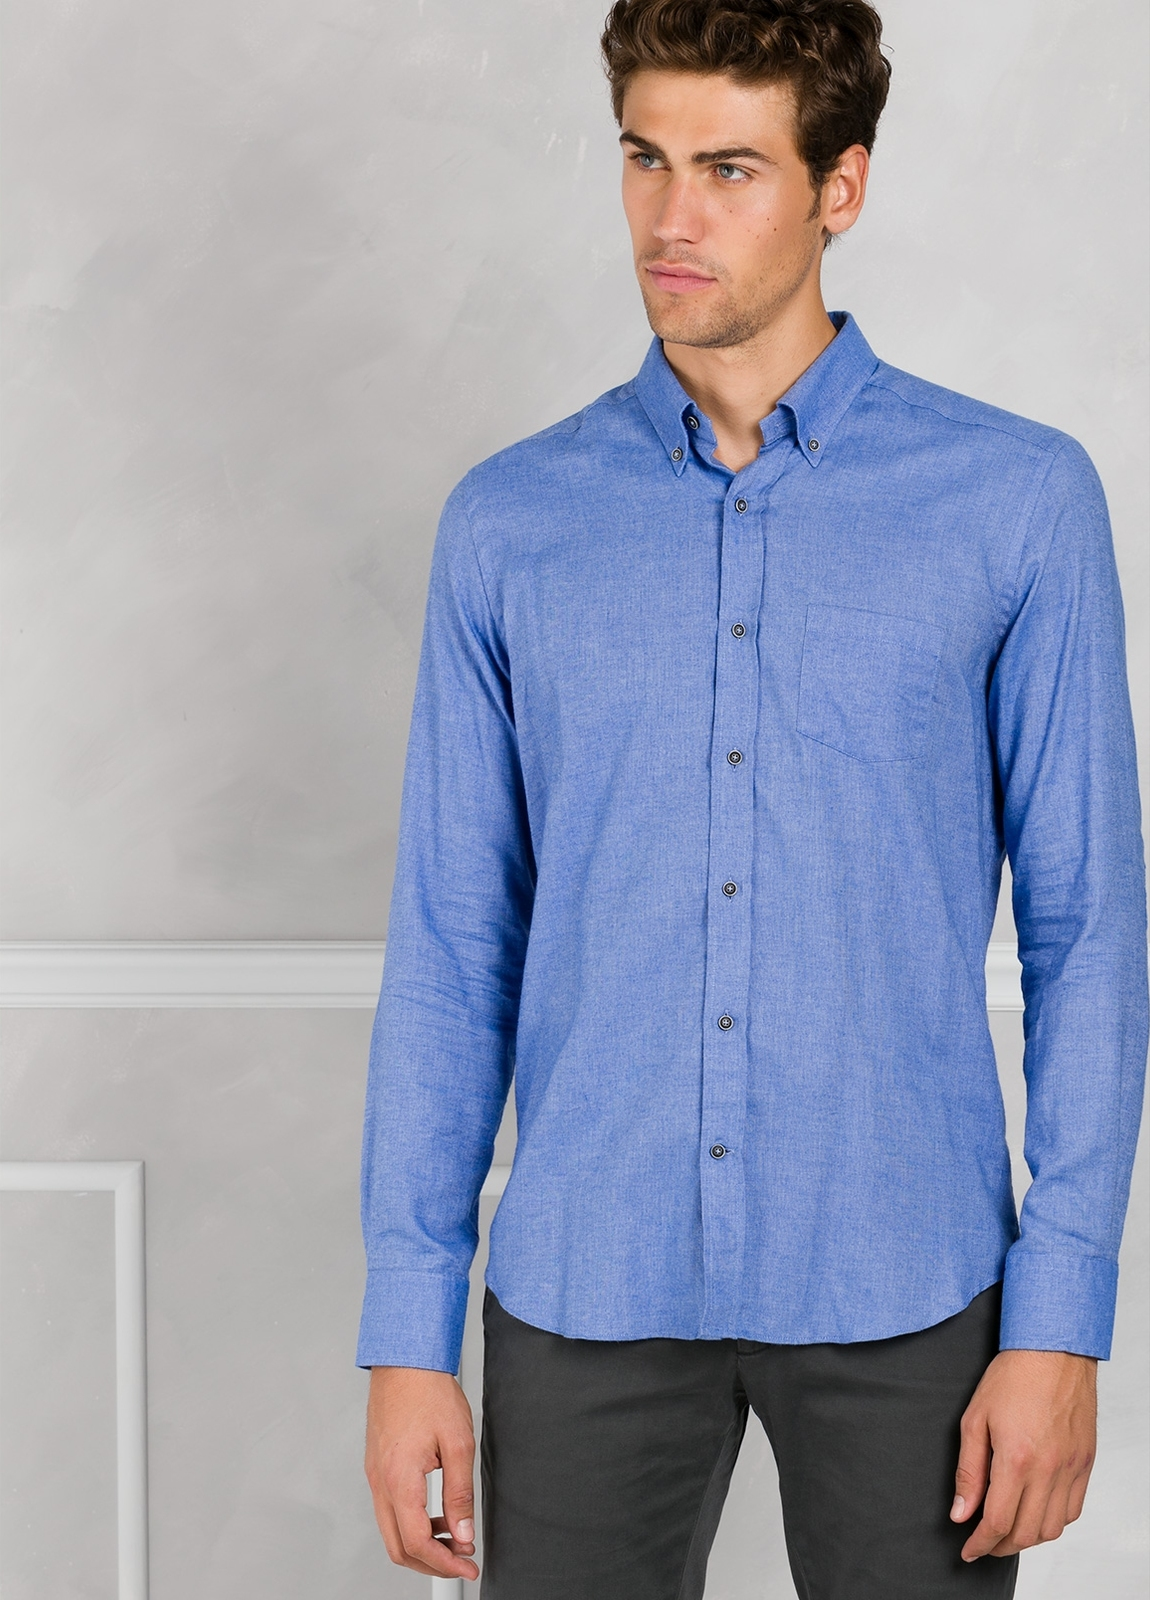 Camisa Leisure Wear REGULAR FIT Modelo BOTTON DOWN color azul. 100% Algodón.